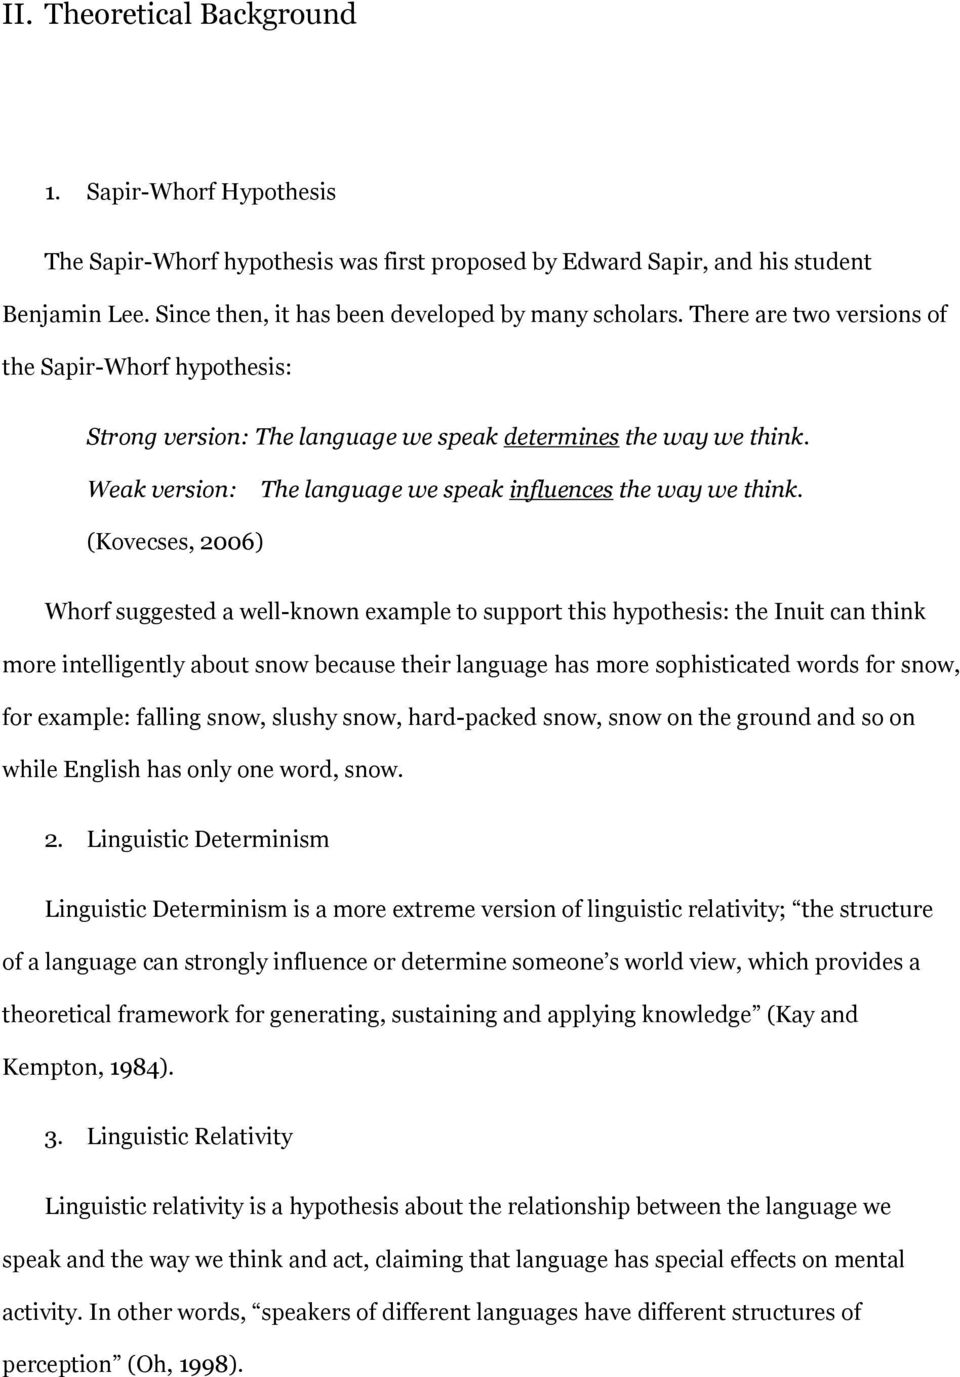 (Kovecses, 2006) Whorf suggested a well-known example to support this hypothesis: the Inuit can think more intelligently about snow because their language has more sophisticated words for snow, for